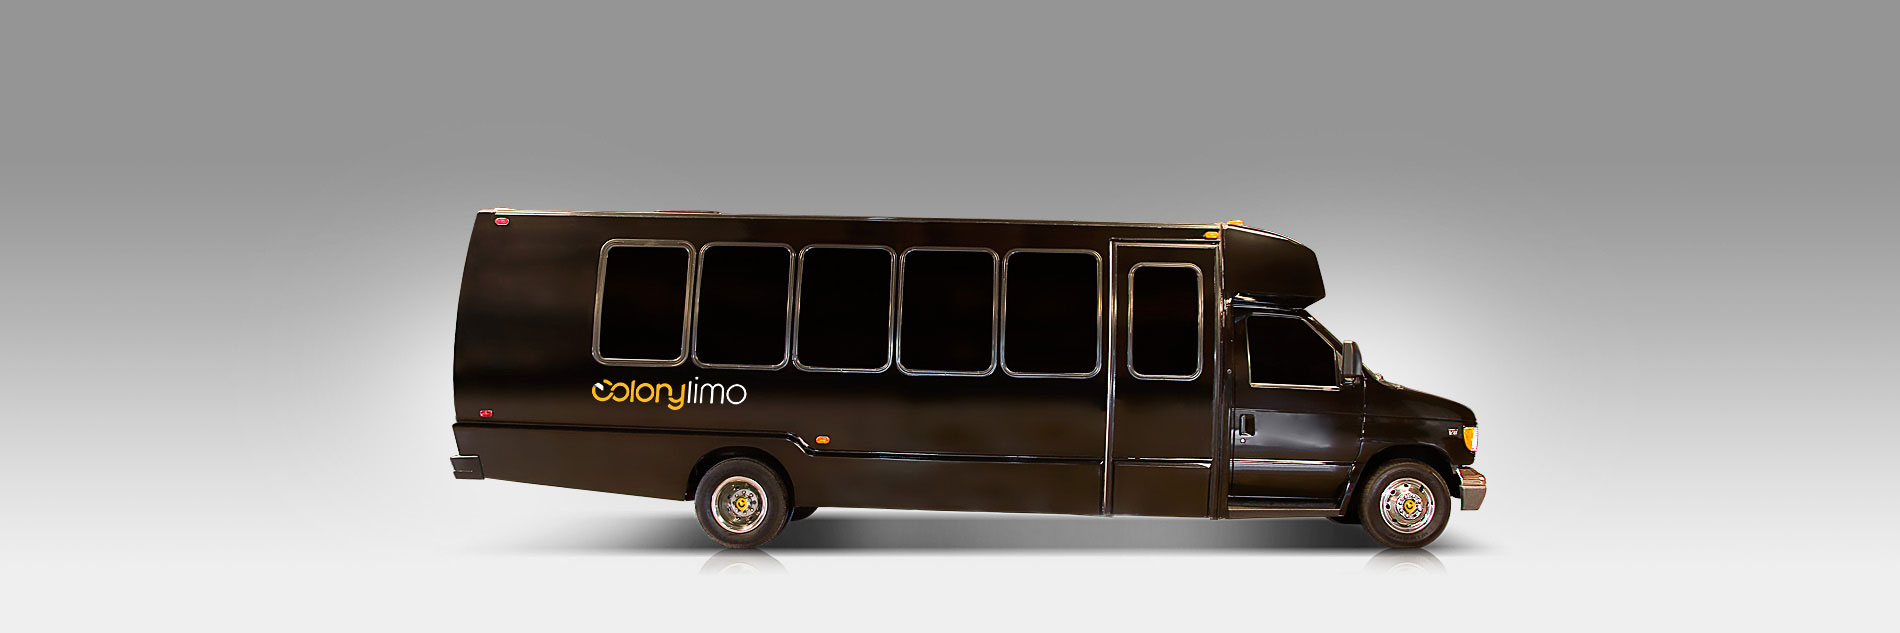 Party Bus - 18/20 Passenger - Colony Limo Service Houston